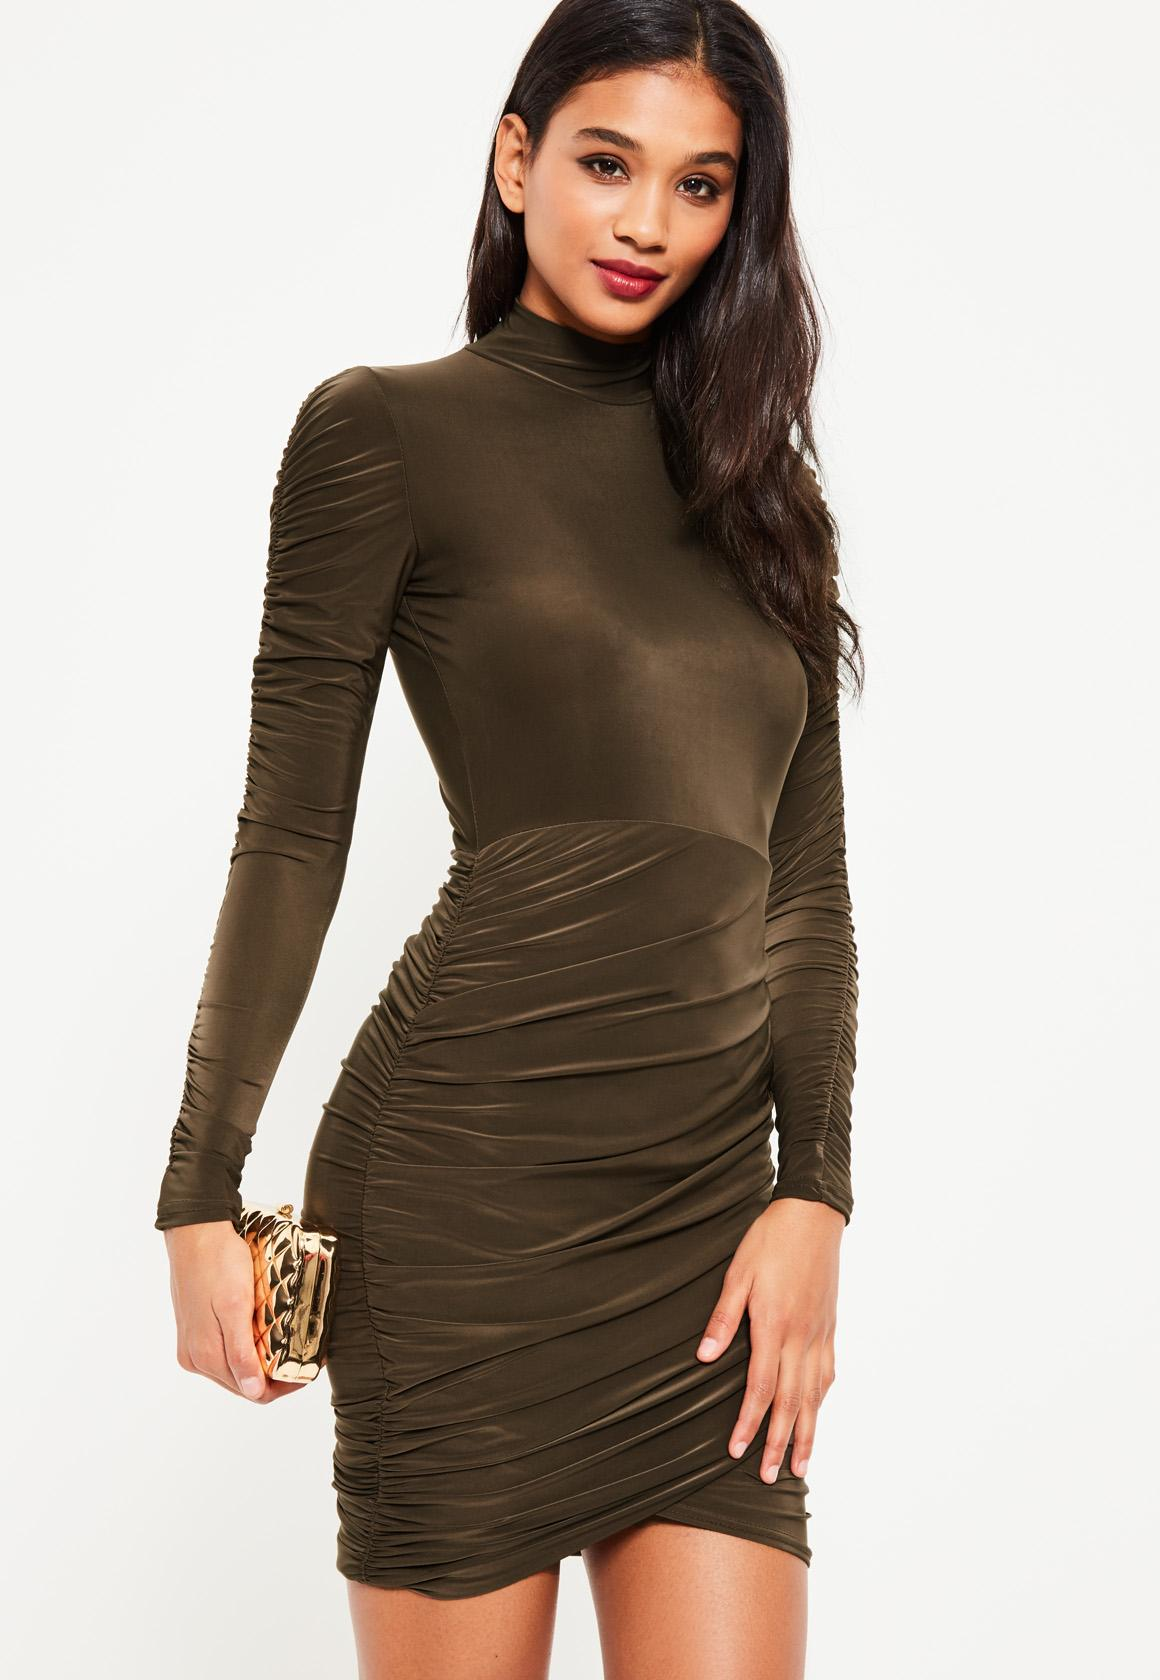 Khaki Slinky High Neck Ruched Dress